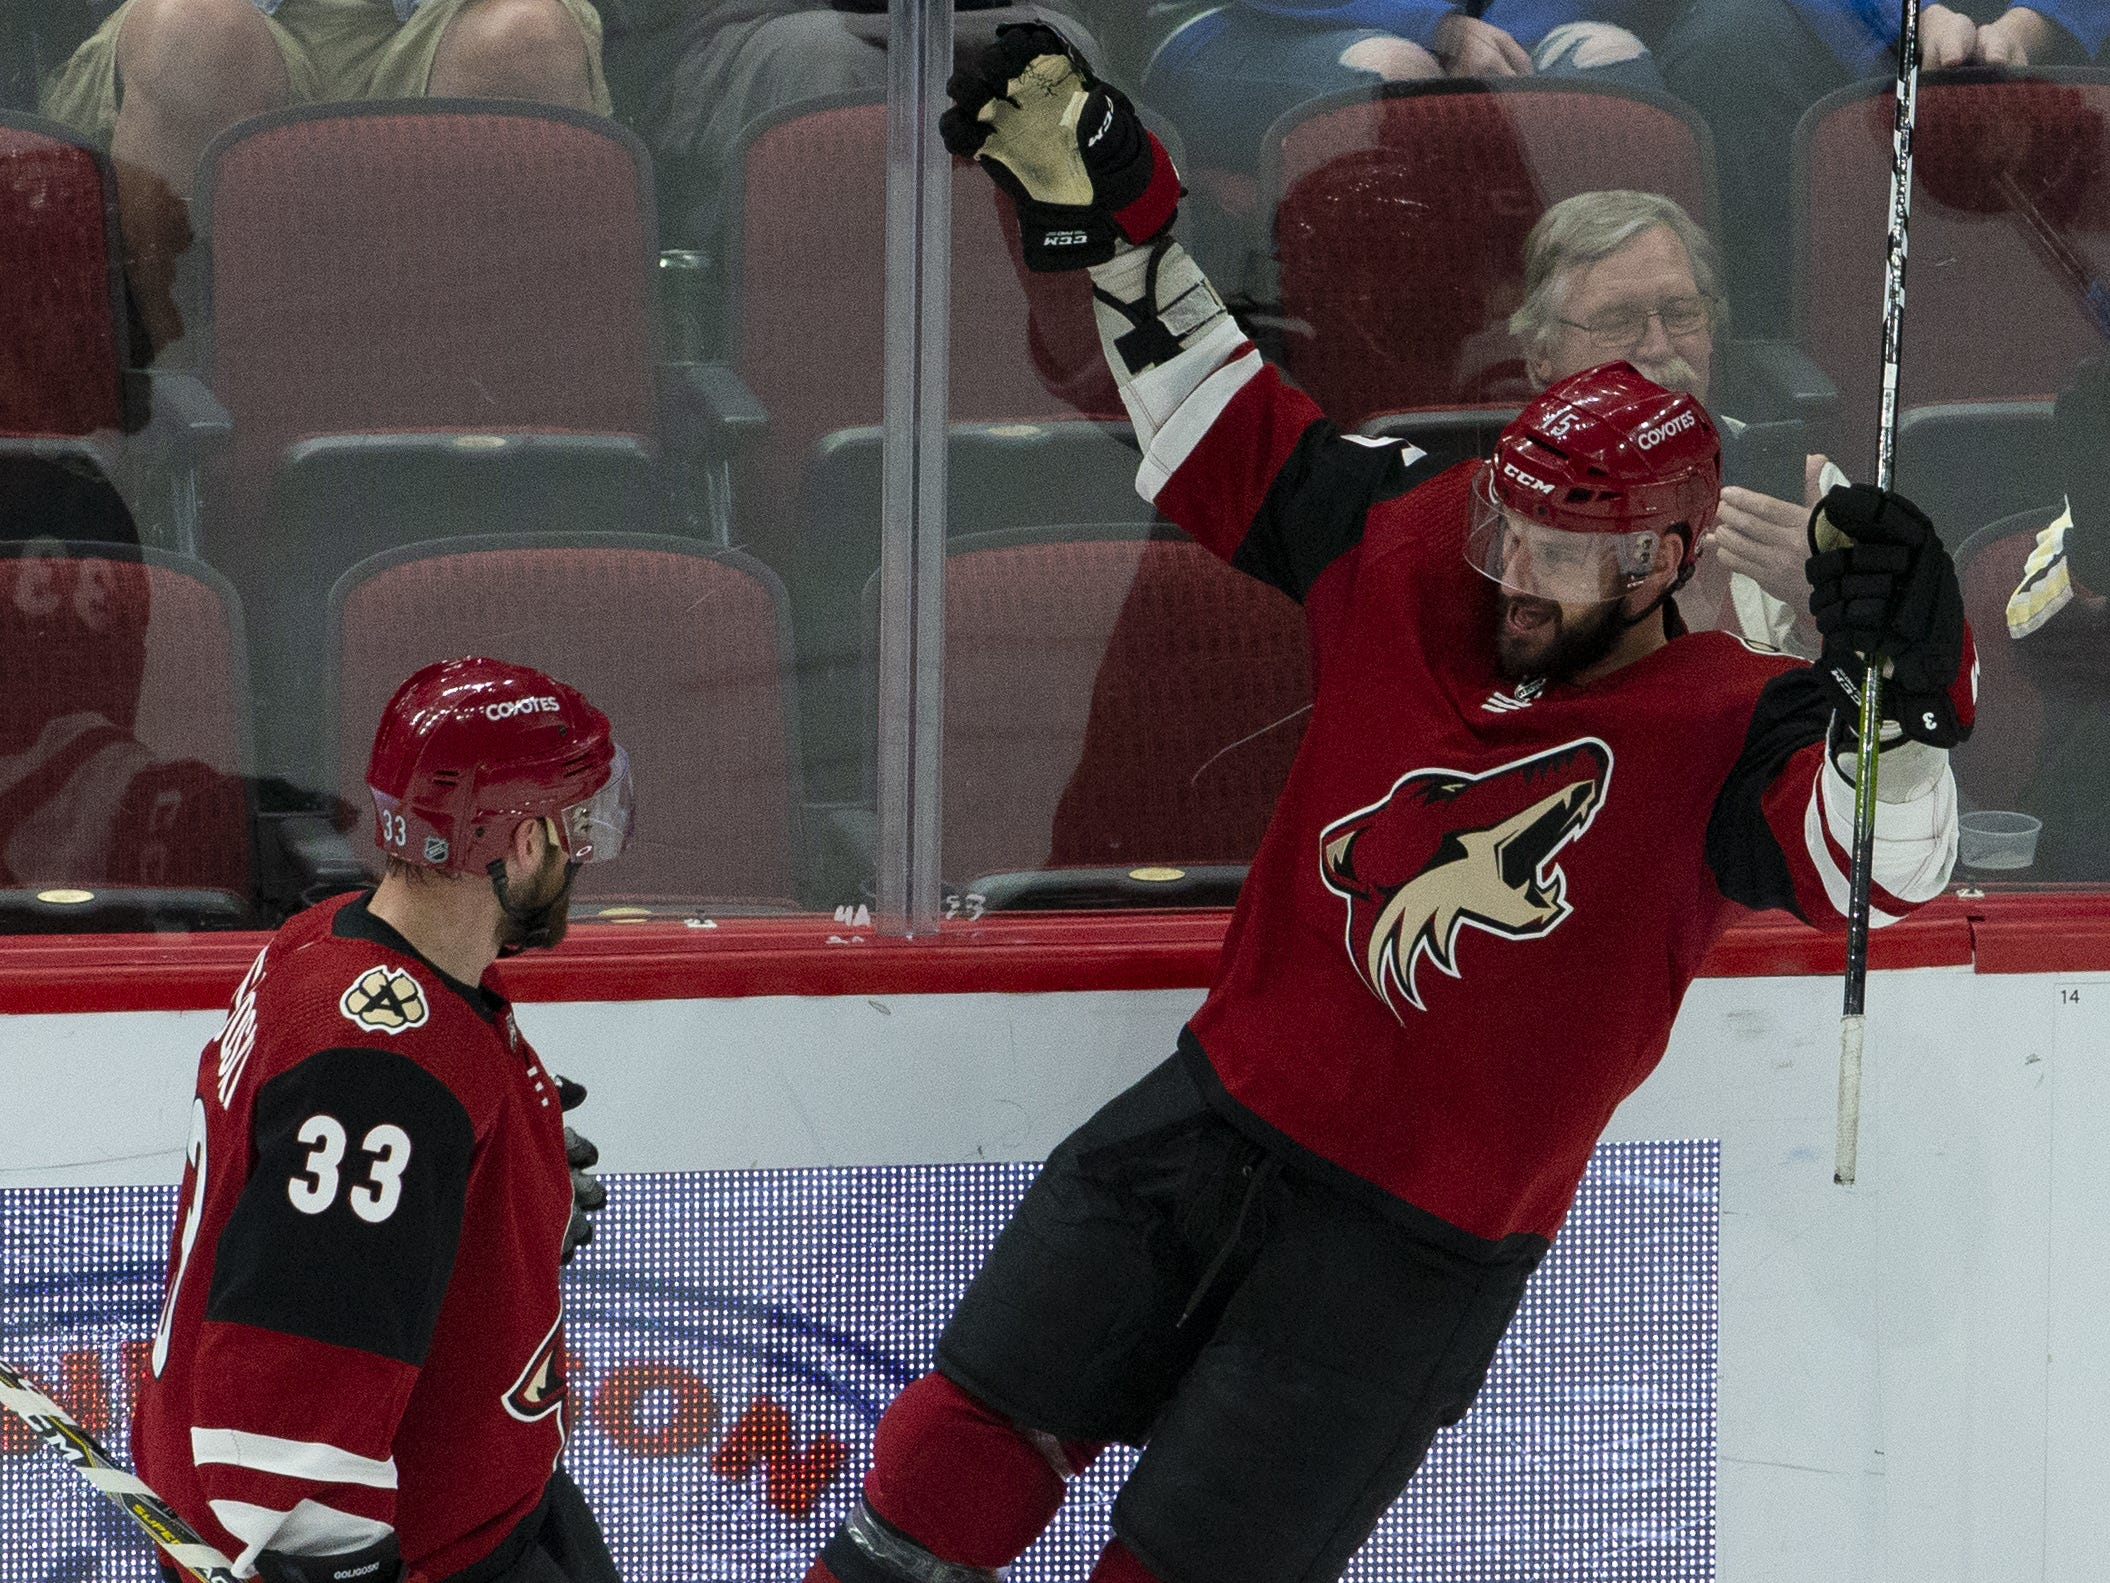 Arizona Coyotes center Brad Richardson (15), right,, celebrates his goal with teammate defenseman Alex Goligoski (33) during a NHL game at Gila River Arena in Glendale on February 28.